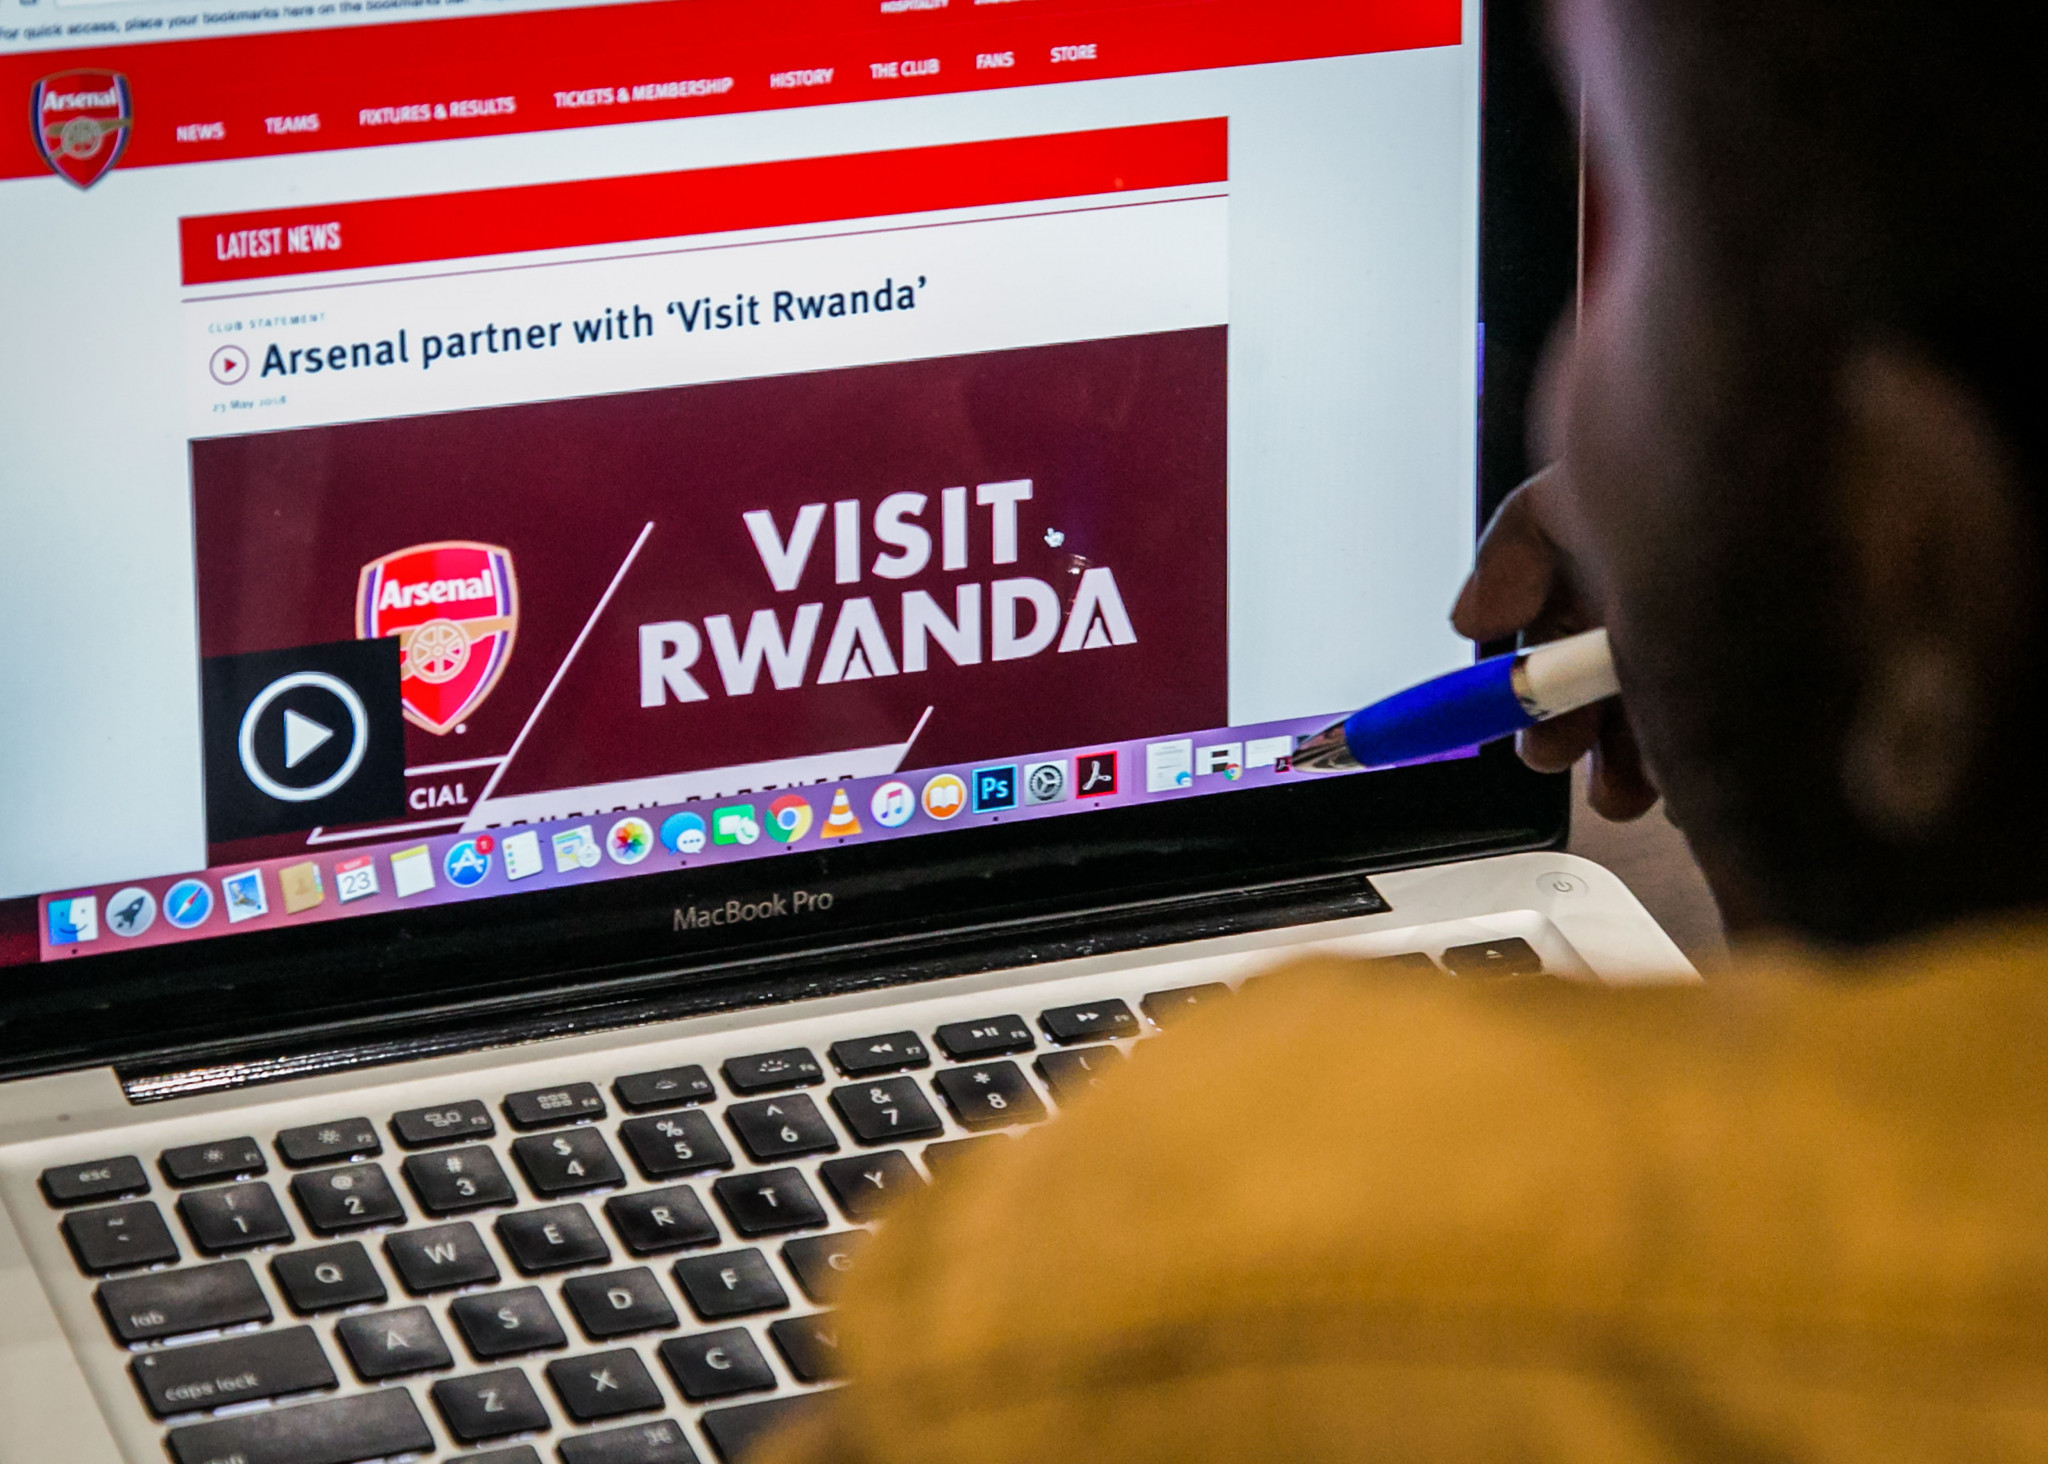 English Premier League team Arsenal faced criticism over their partnership with Rwanda ©Getty Images